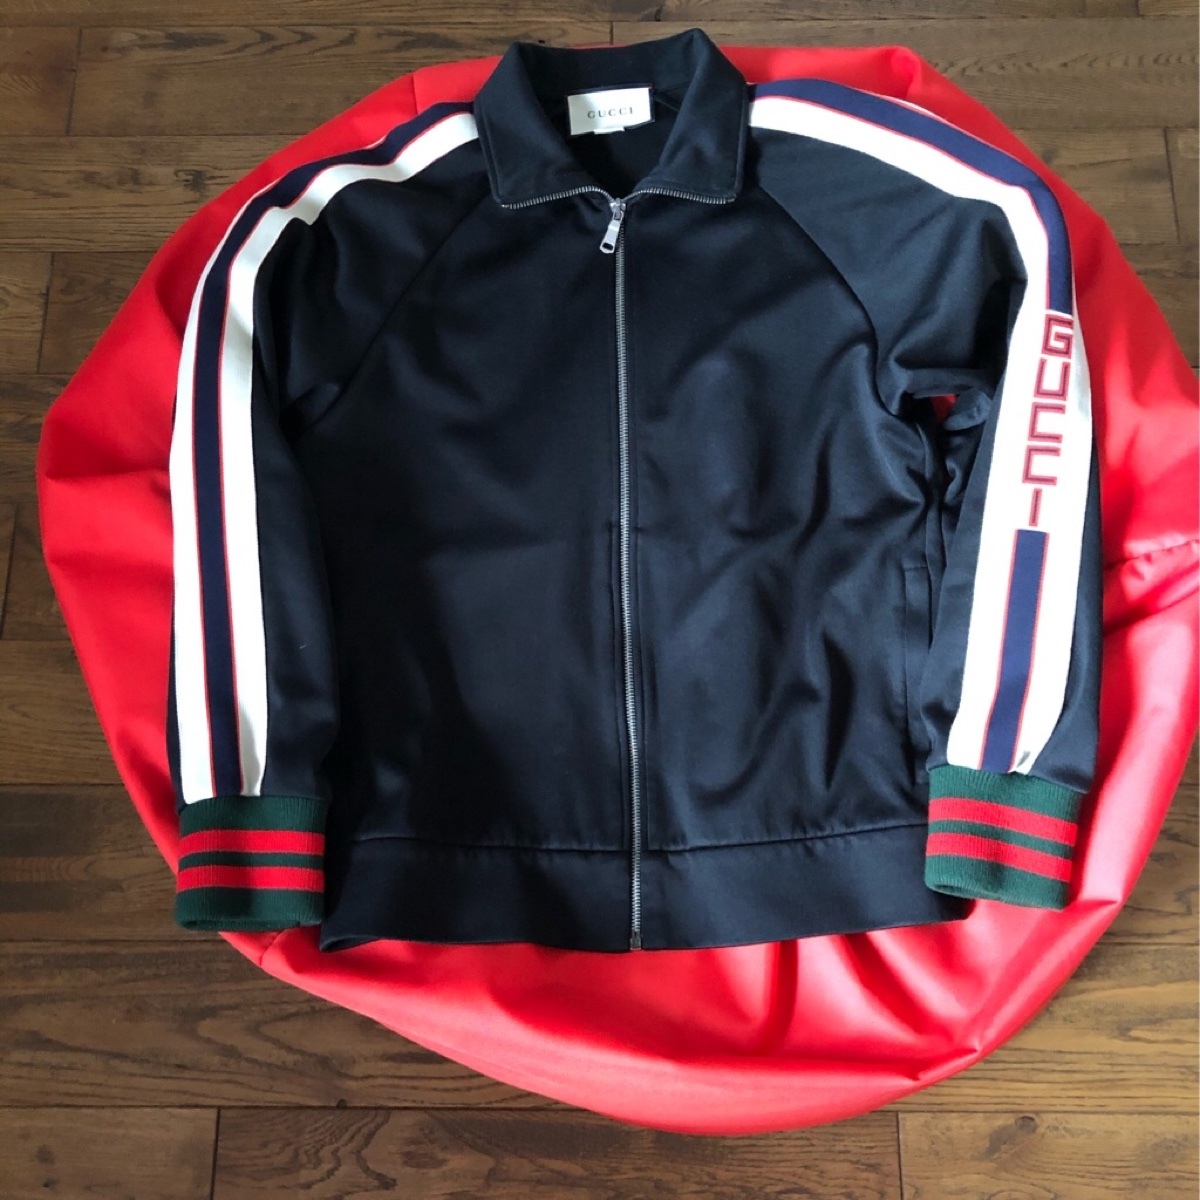 Track jacket Gucci